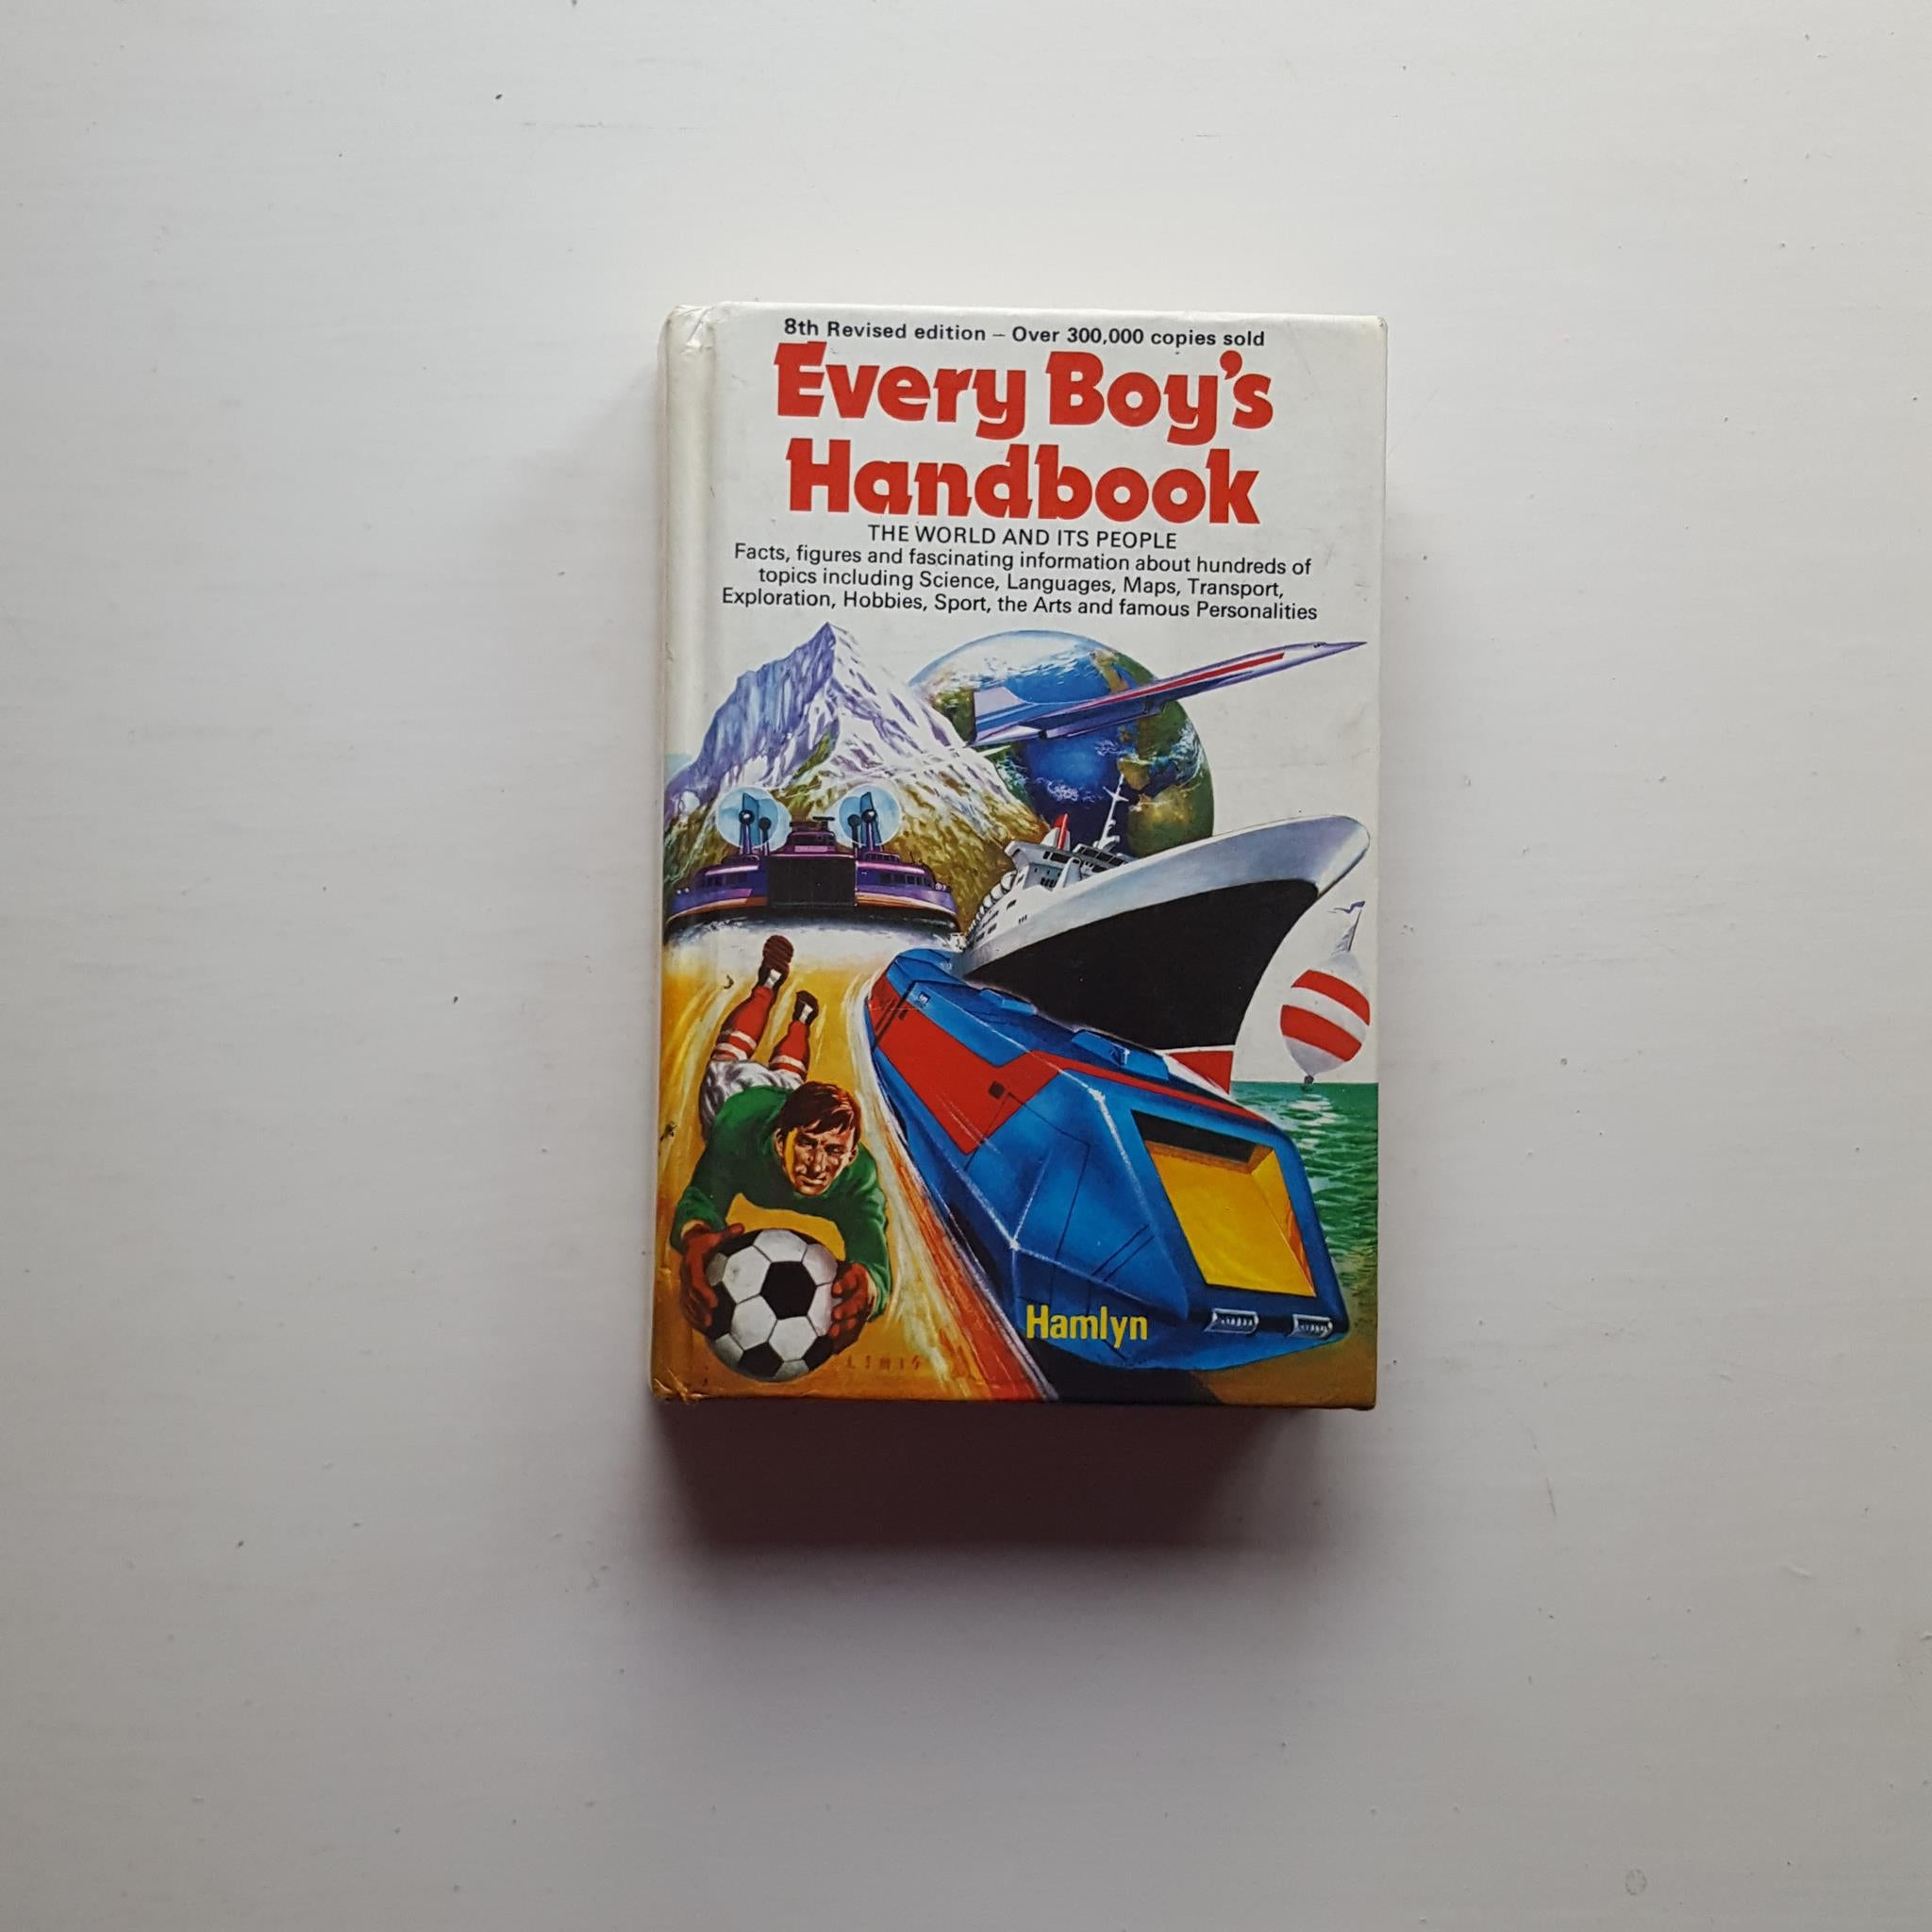 Every Boy's Handbook by Uncredited